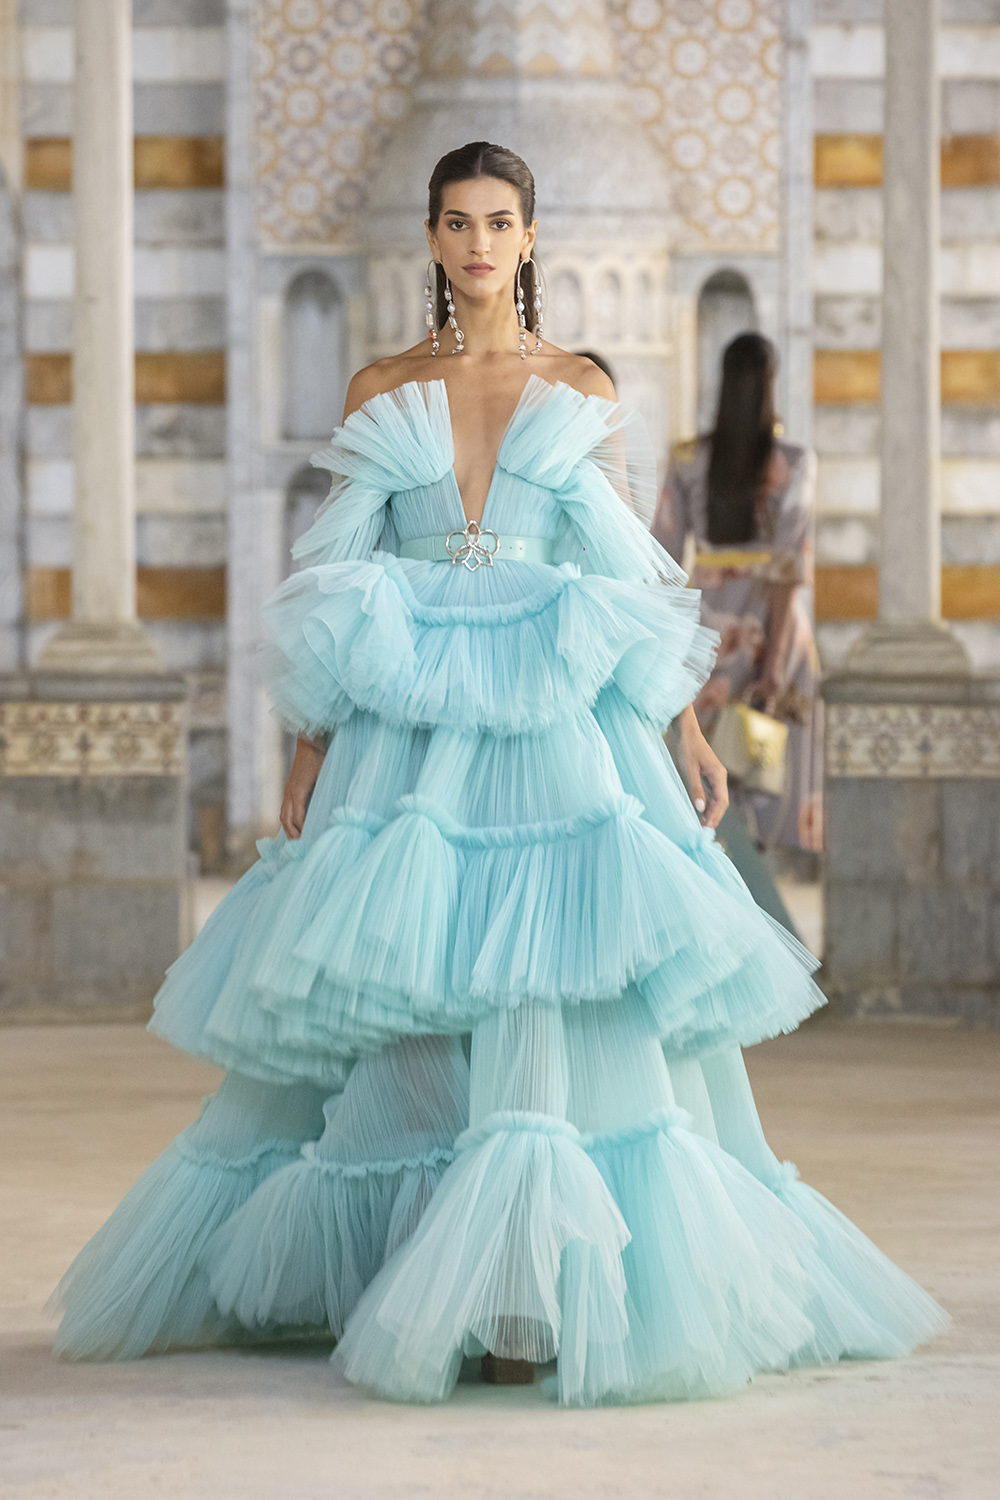 Lush tulle ballgown from Georges Hobeika SS22 ready-to-wear collection I DreaminLace.com #fashionstyle